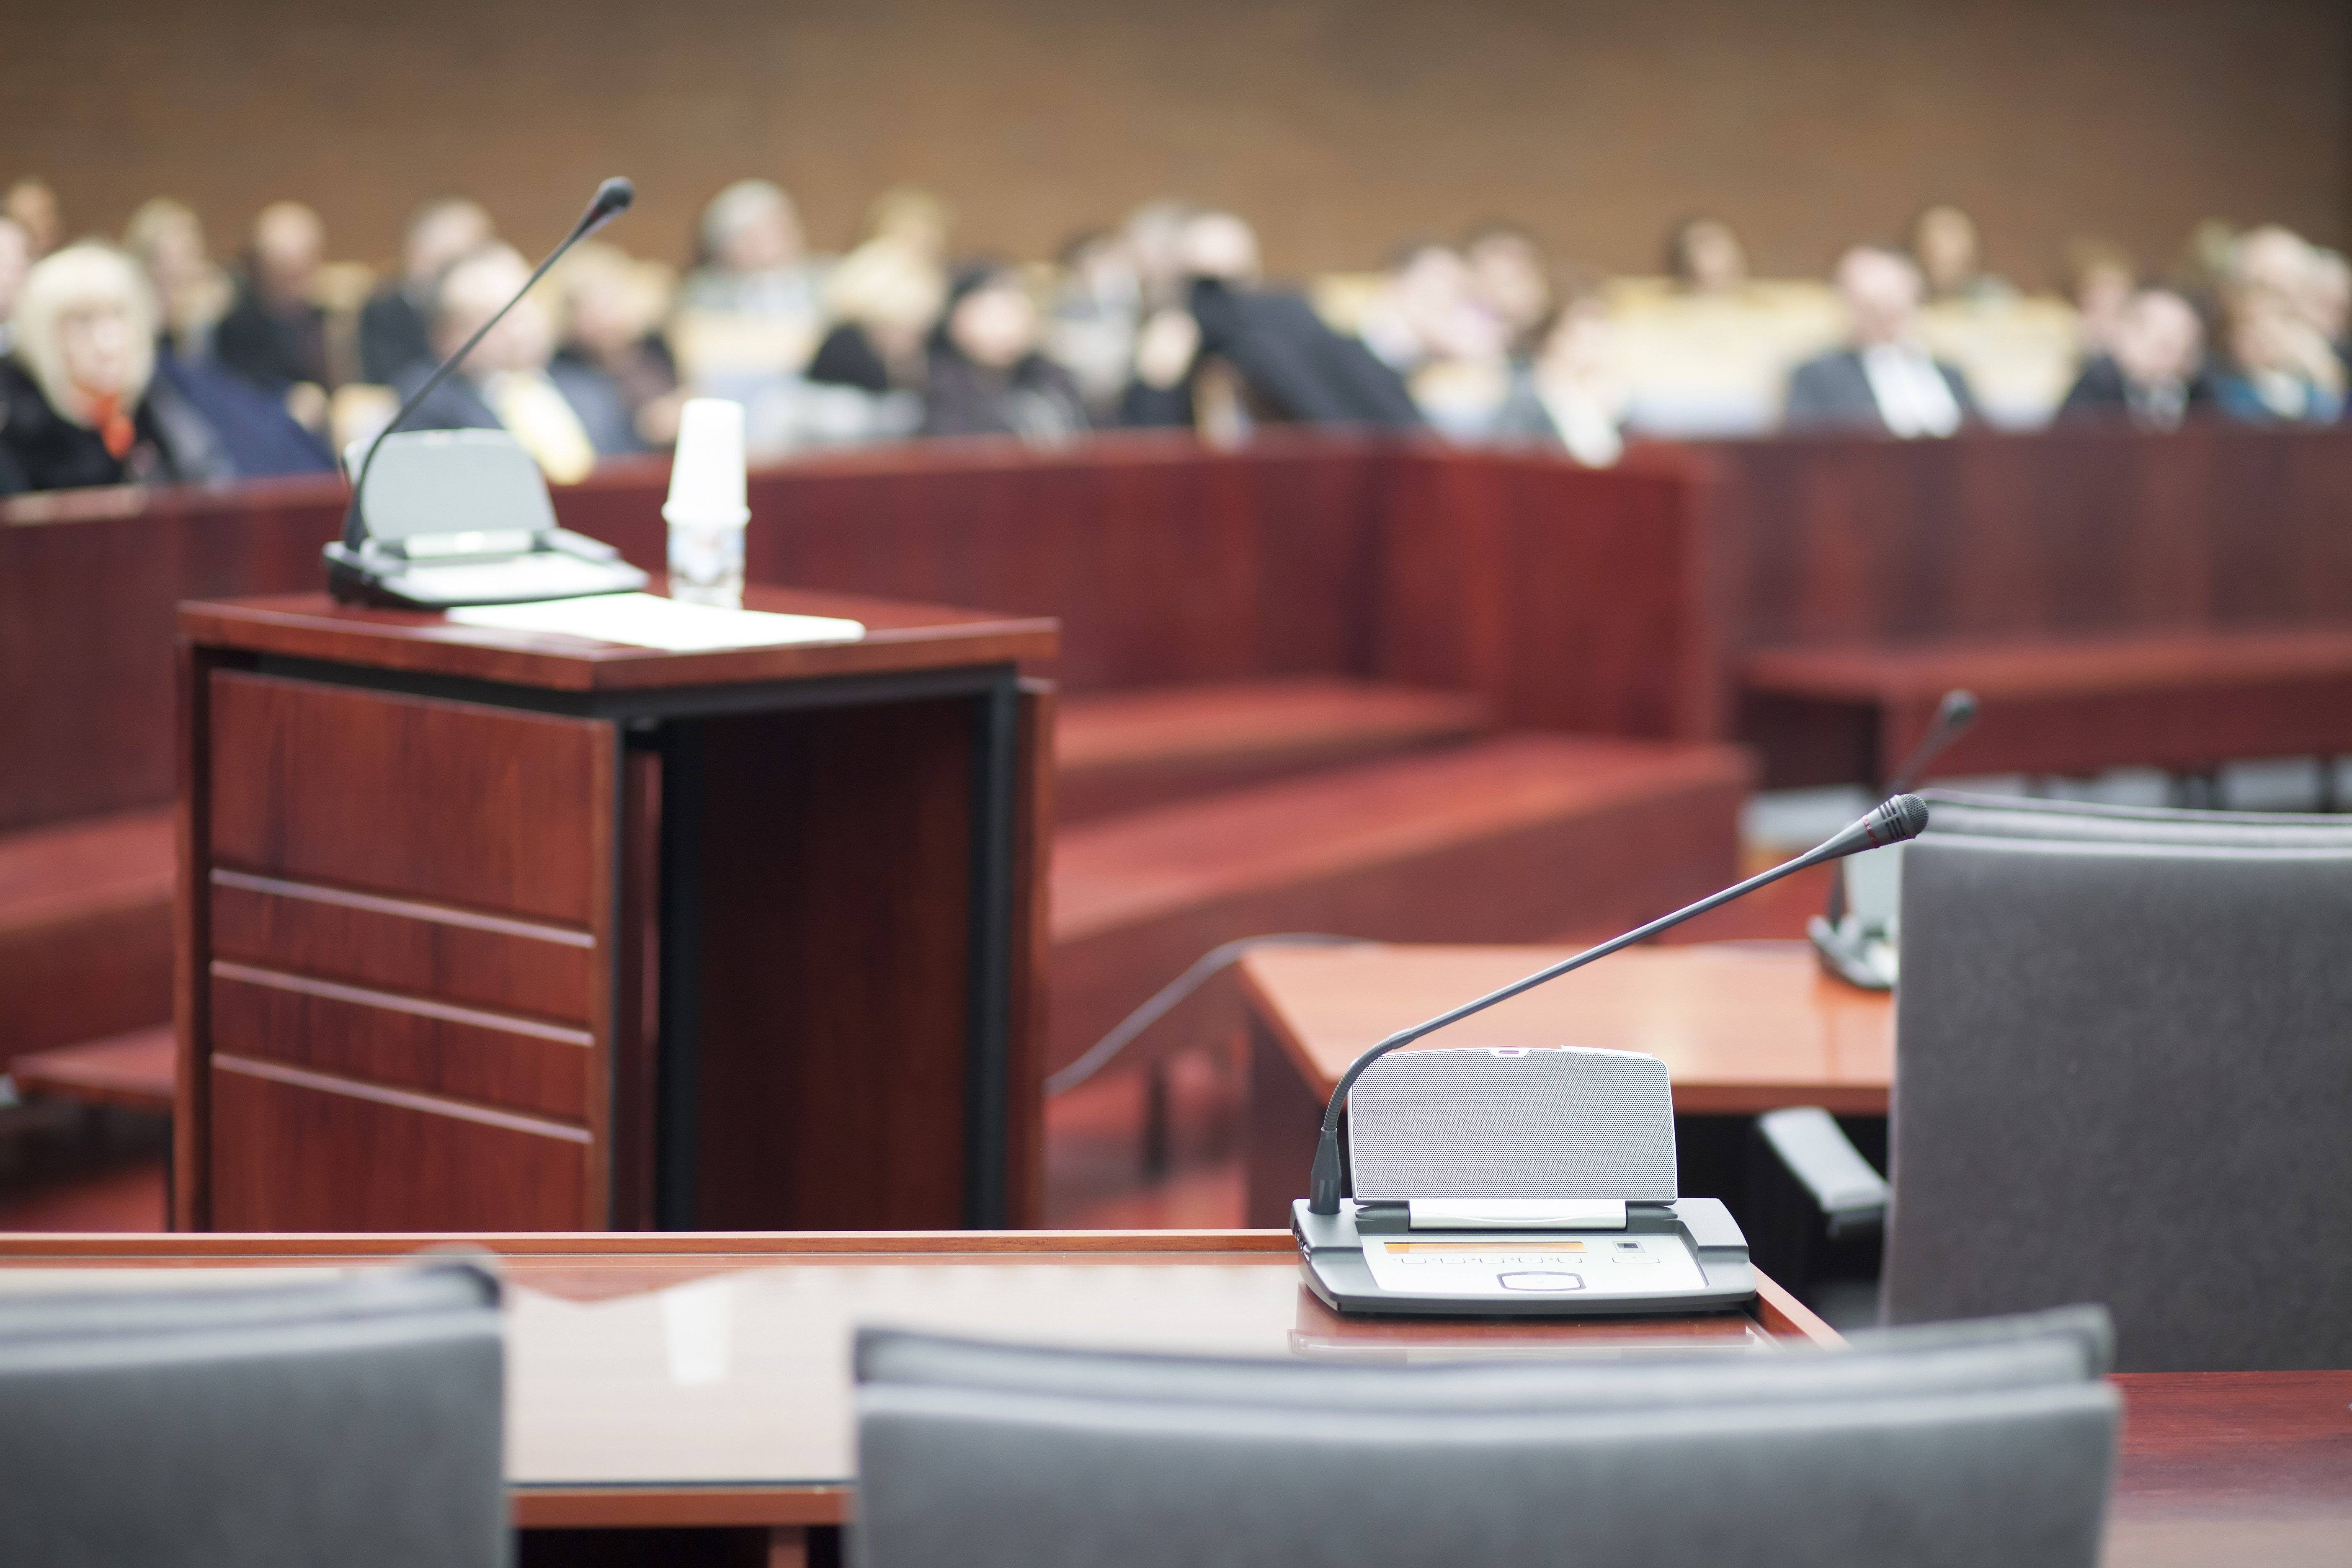 Witness stand in court. Image credit: Pixabay